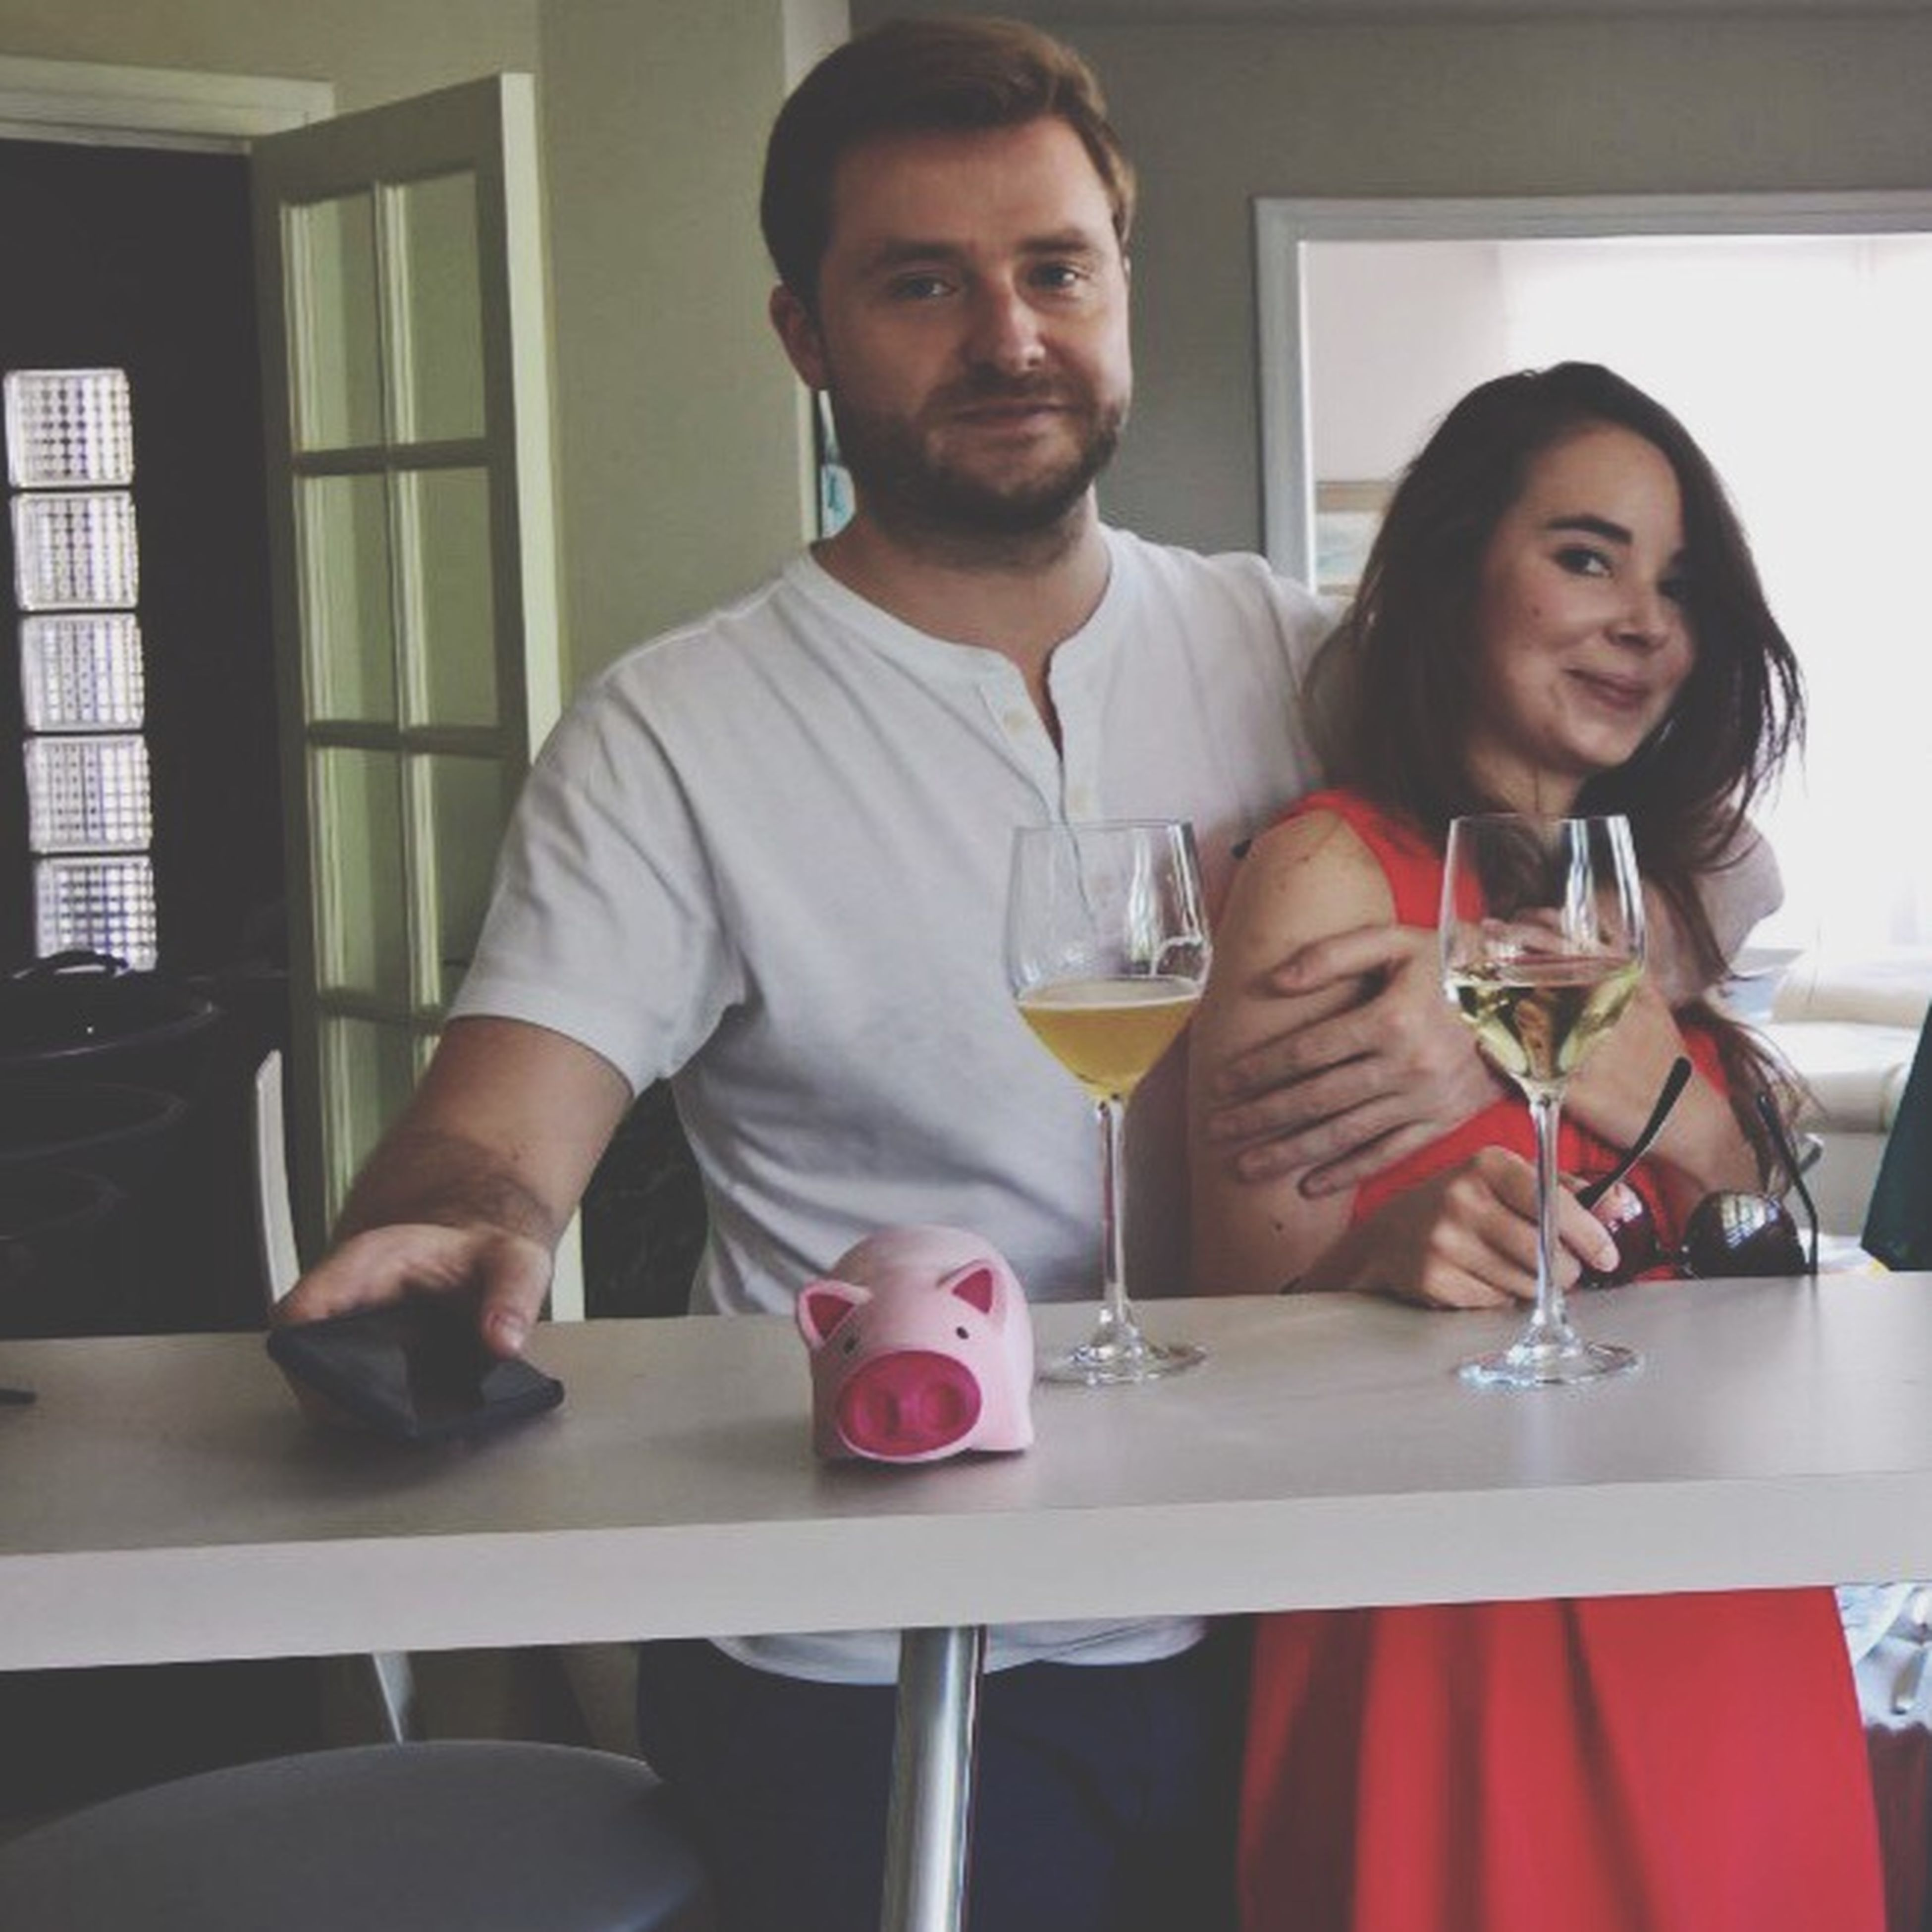 two people, table, drinking, wine, food and drink, looking at camera, indoors, love, drink, portrait, smiling, friendship, alcohol, sitting, young adult, young women, day, adult, people